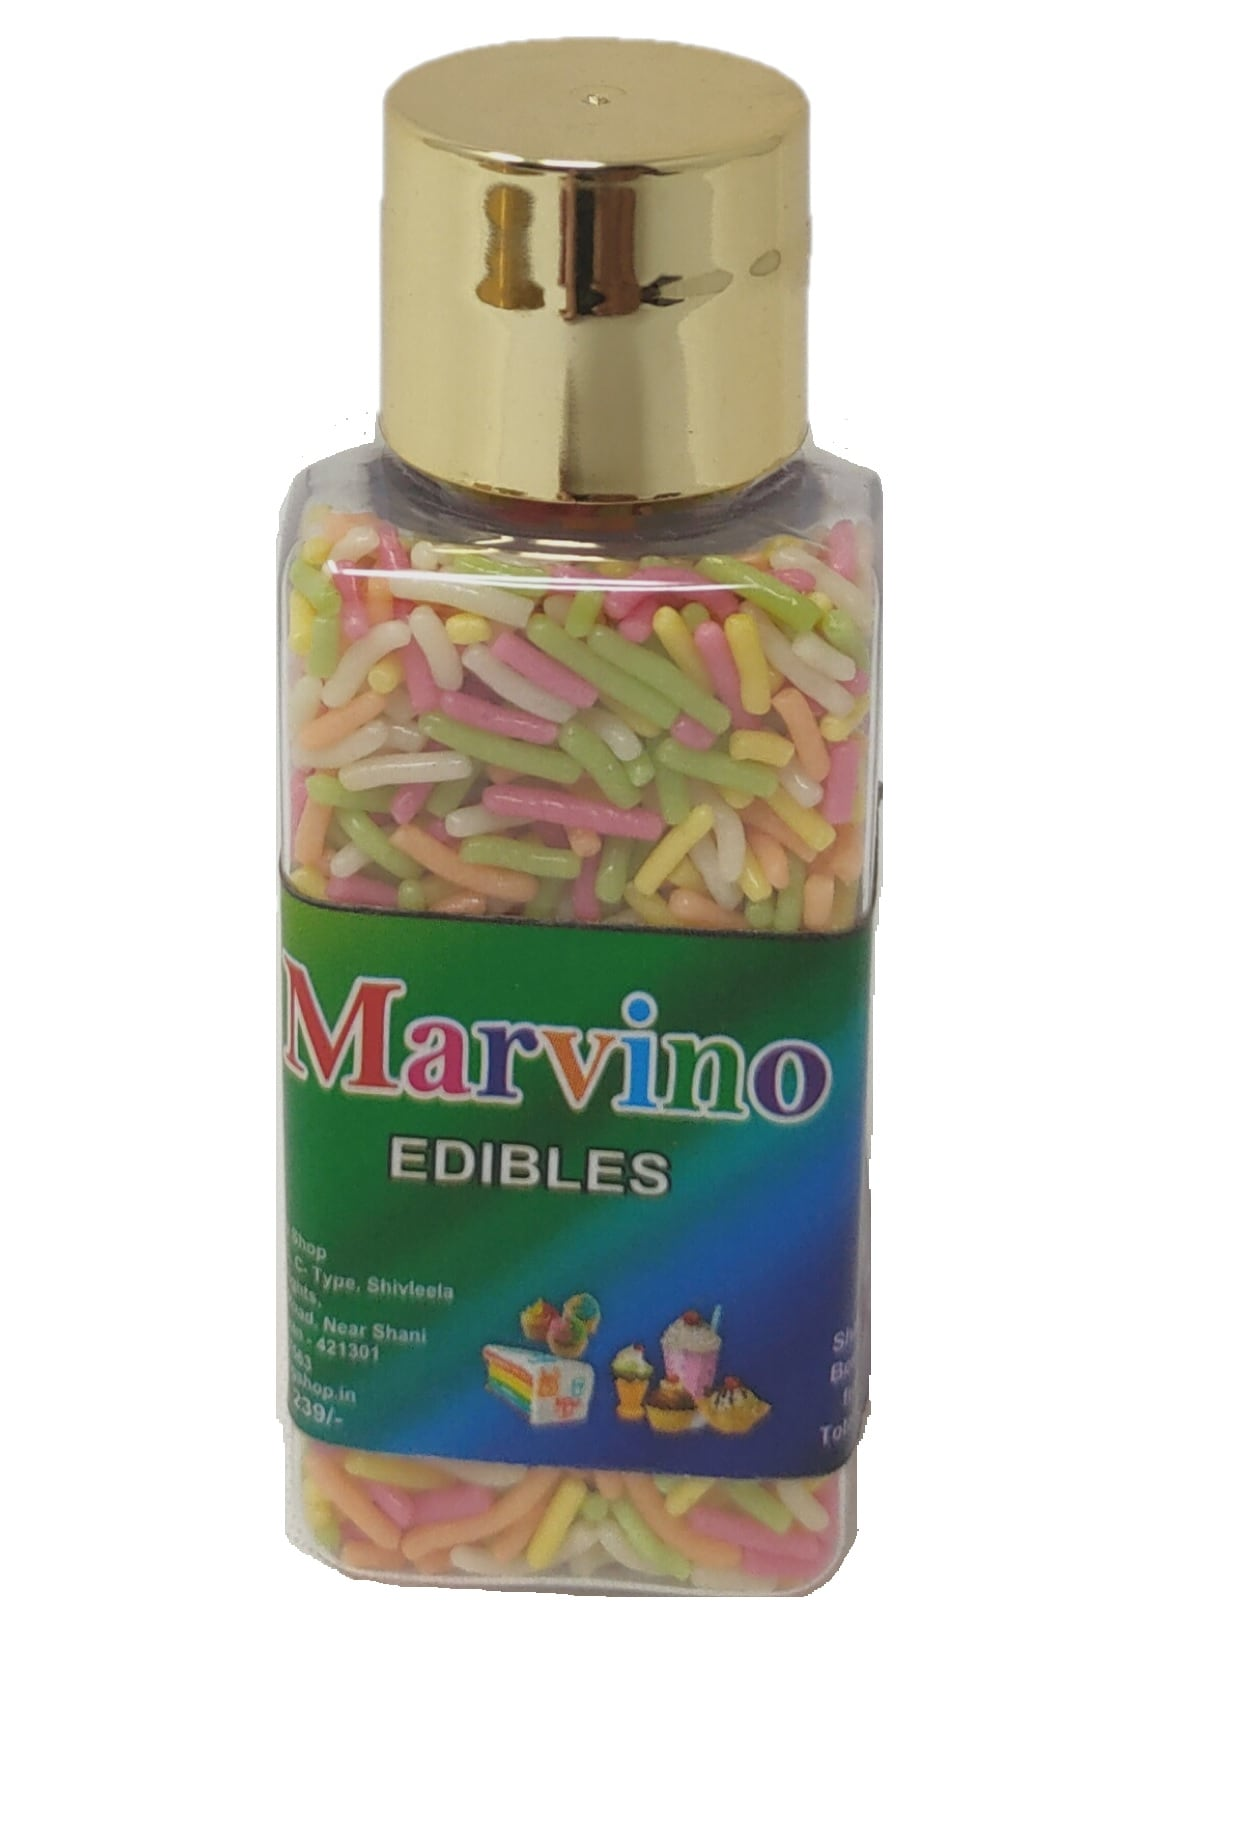 Marvino Edibles Cake And Pastries Decoration (Multi Colored Sprinkles)